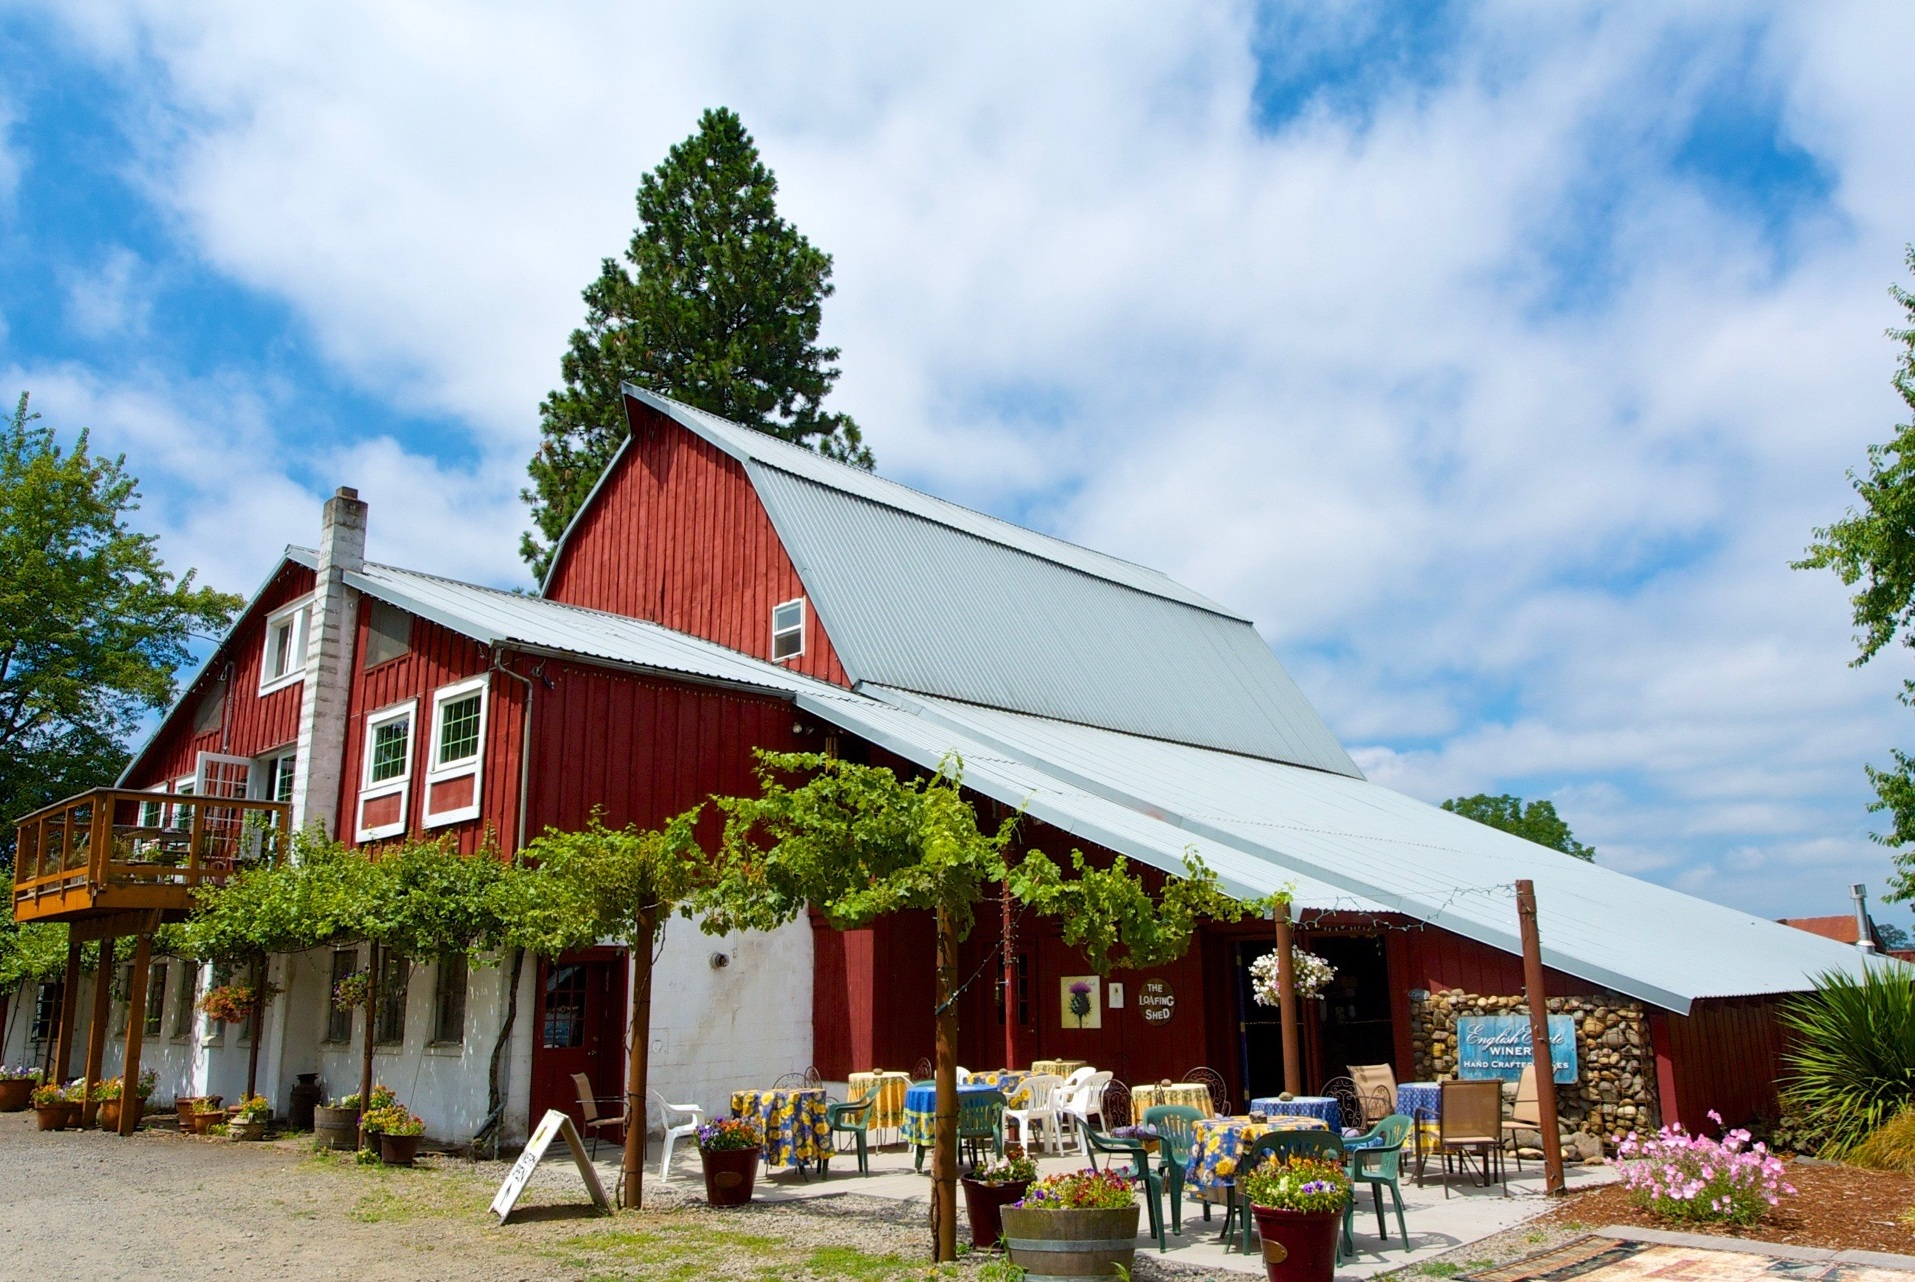 The Loafing Shed Tasting Room is located in our 1915 barn surrounded by 20 acres of vineyards and gardens.